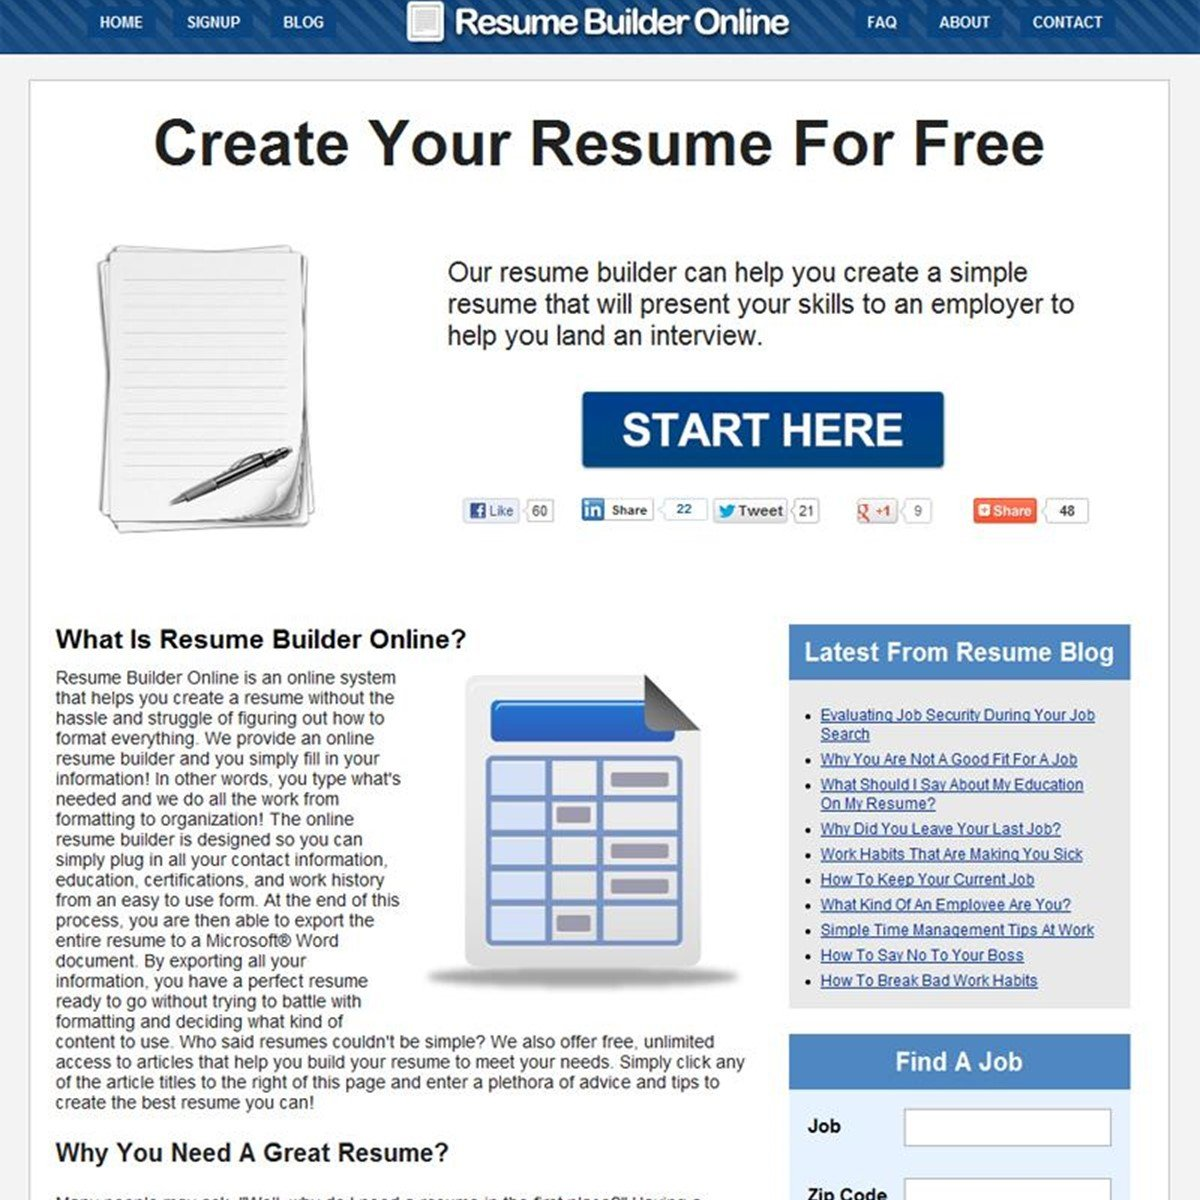 Free Resume Builder Online Alternatives